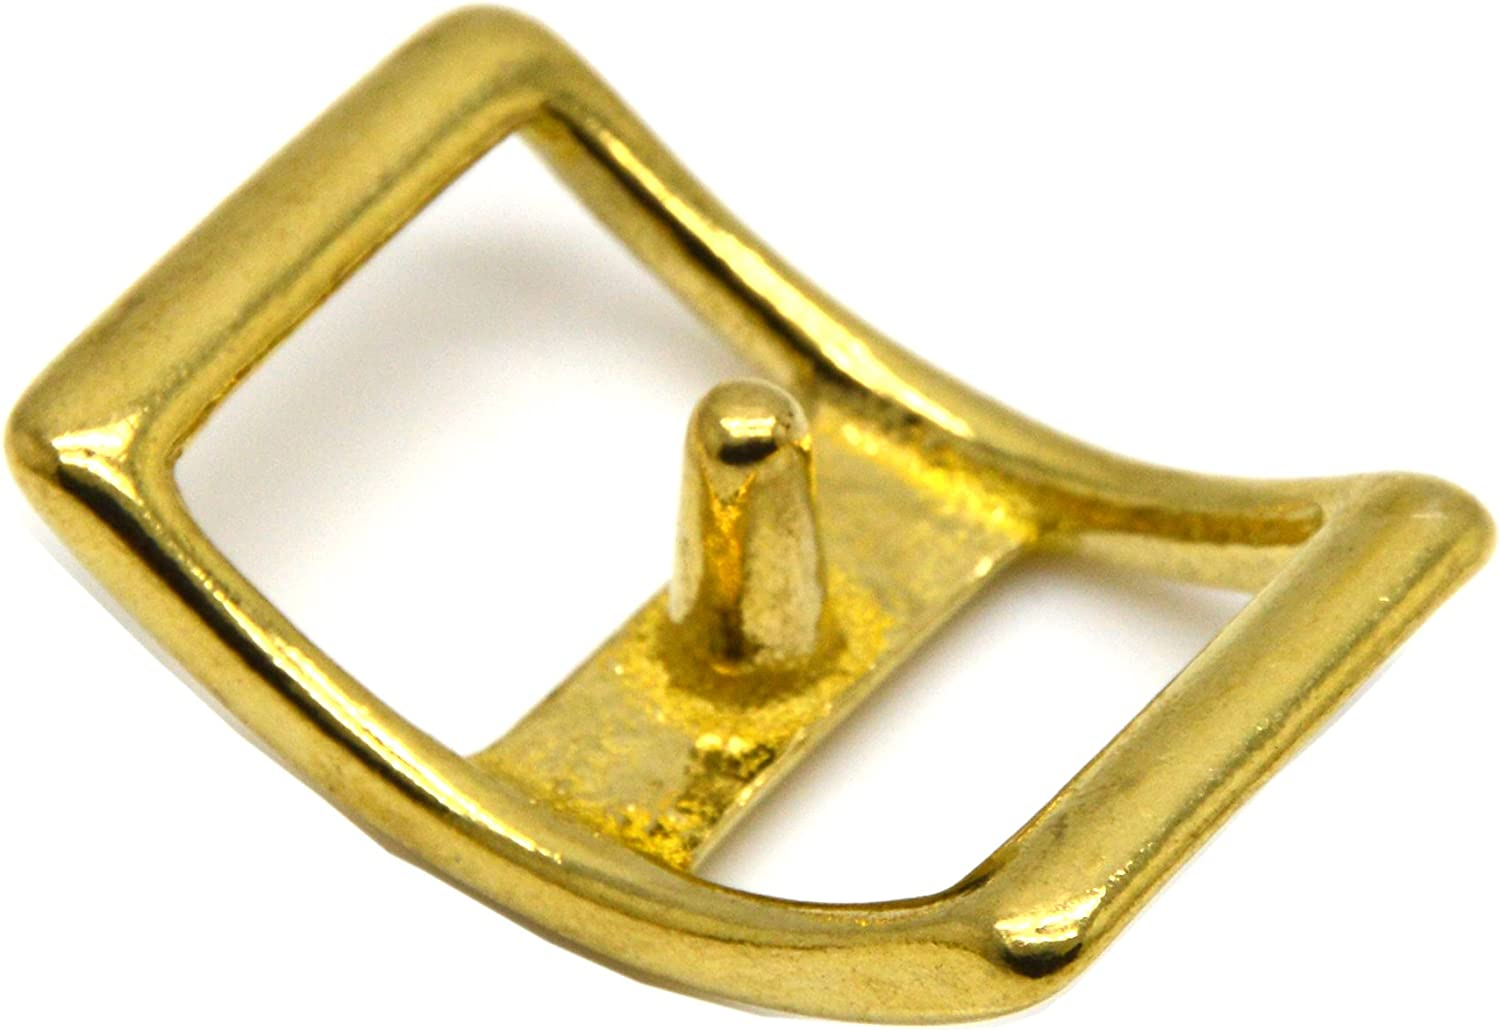 Okone 1 Inner Width Solid Brass Conway Buckle Saddle Buckle Strap Buckle for Leathercraft Pack of 4 insides 1